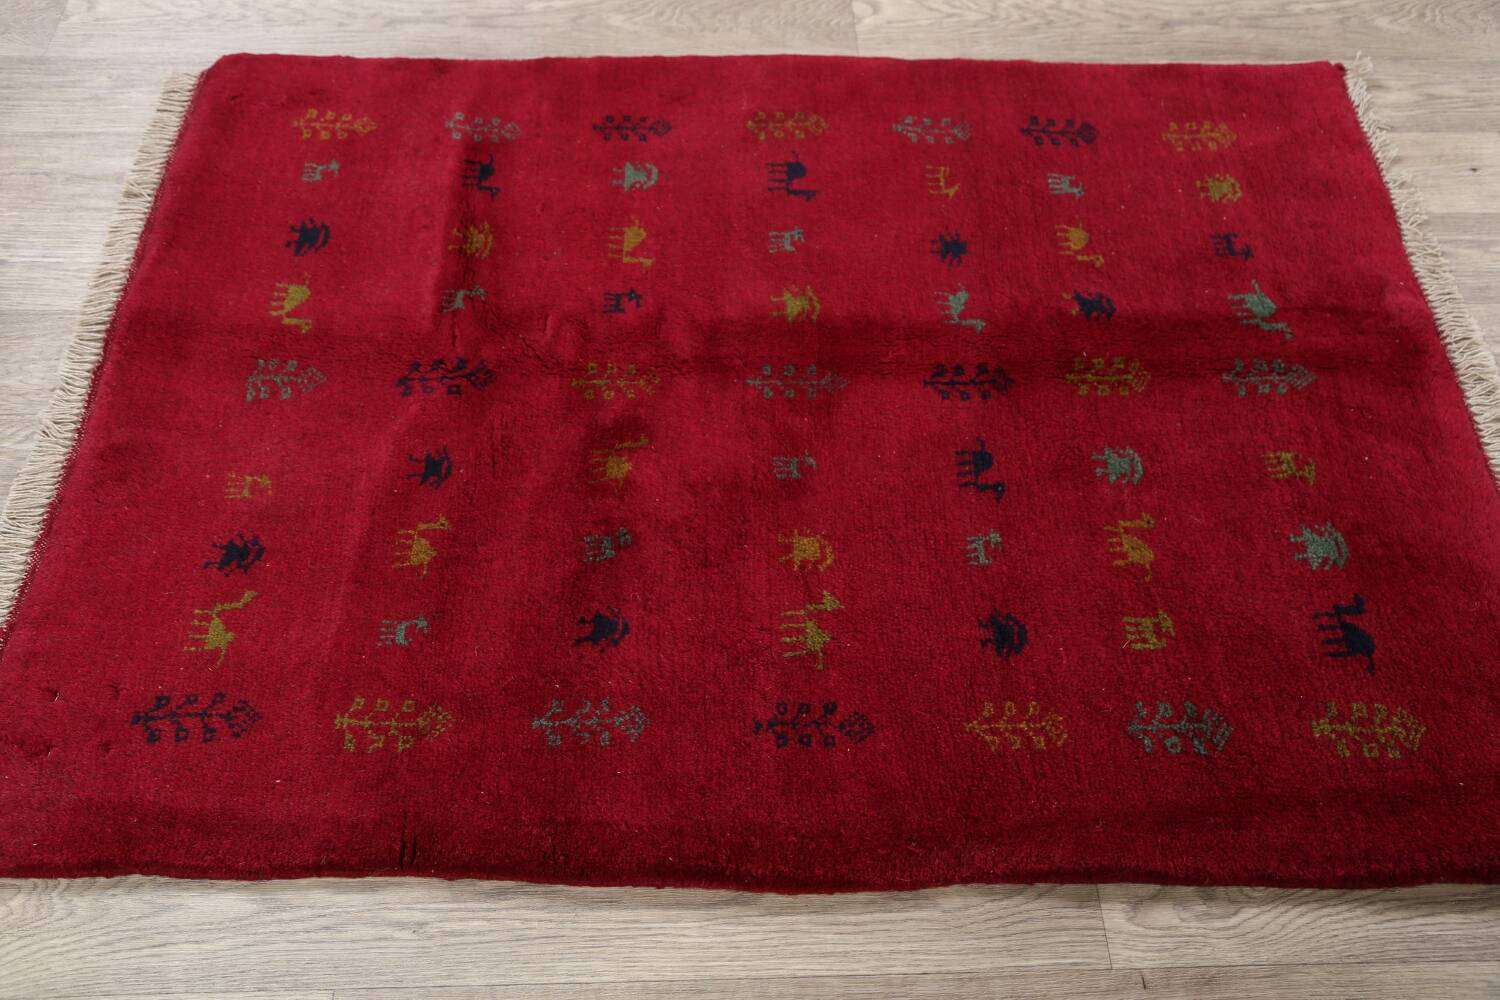 Tribal Red Gabbeh Shiraz Persian Area Rug 4x5 image 11